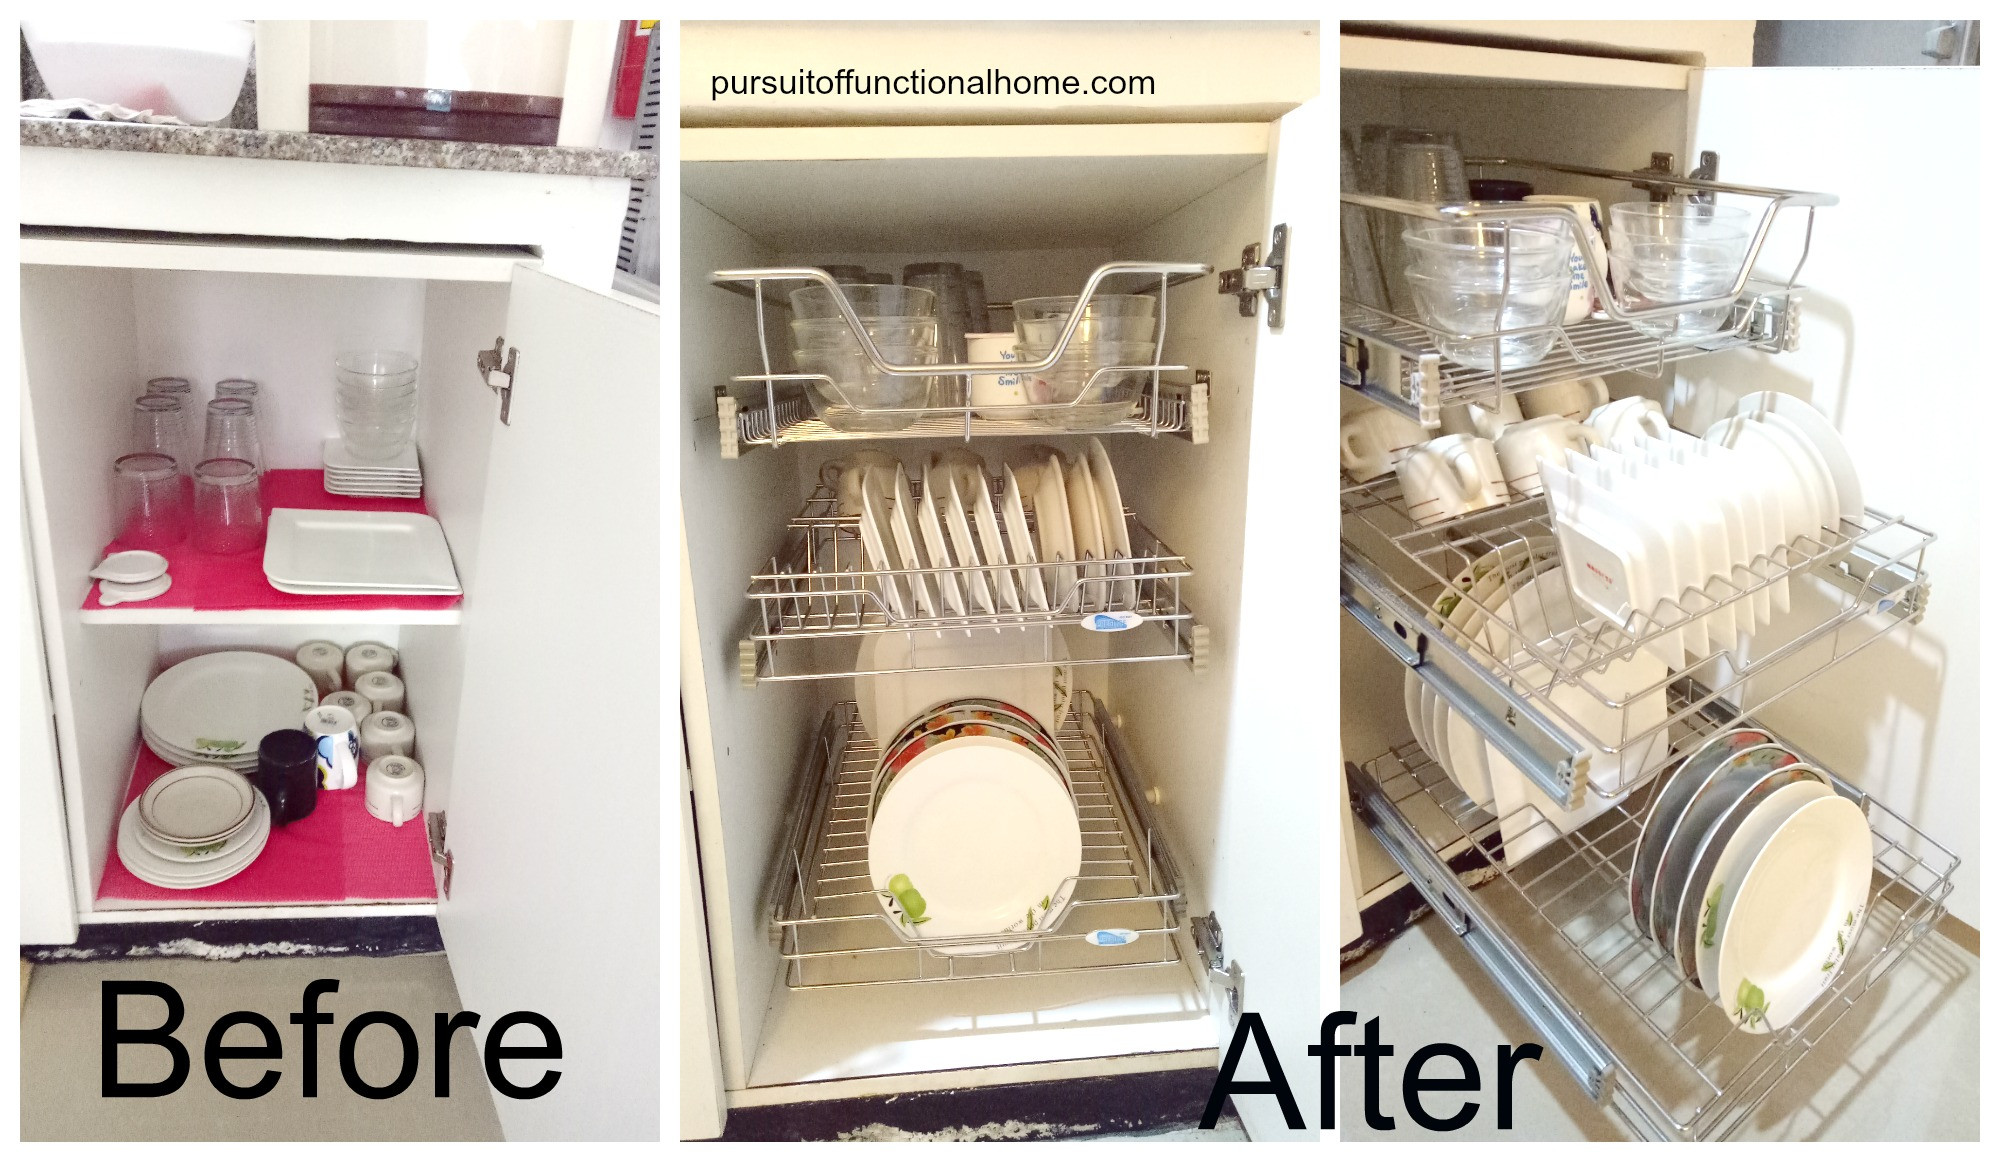 Best ideas about Kitchen Organizer Rack . Save or Pin Pull out Kitchen Wire Rack – Pursuit of Functional Home Now.